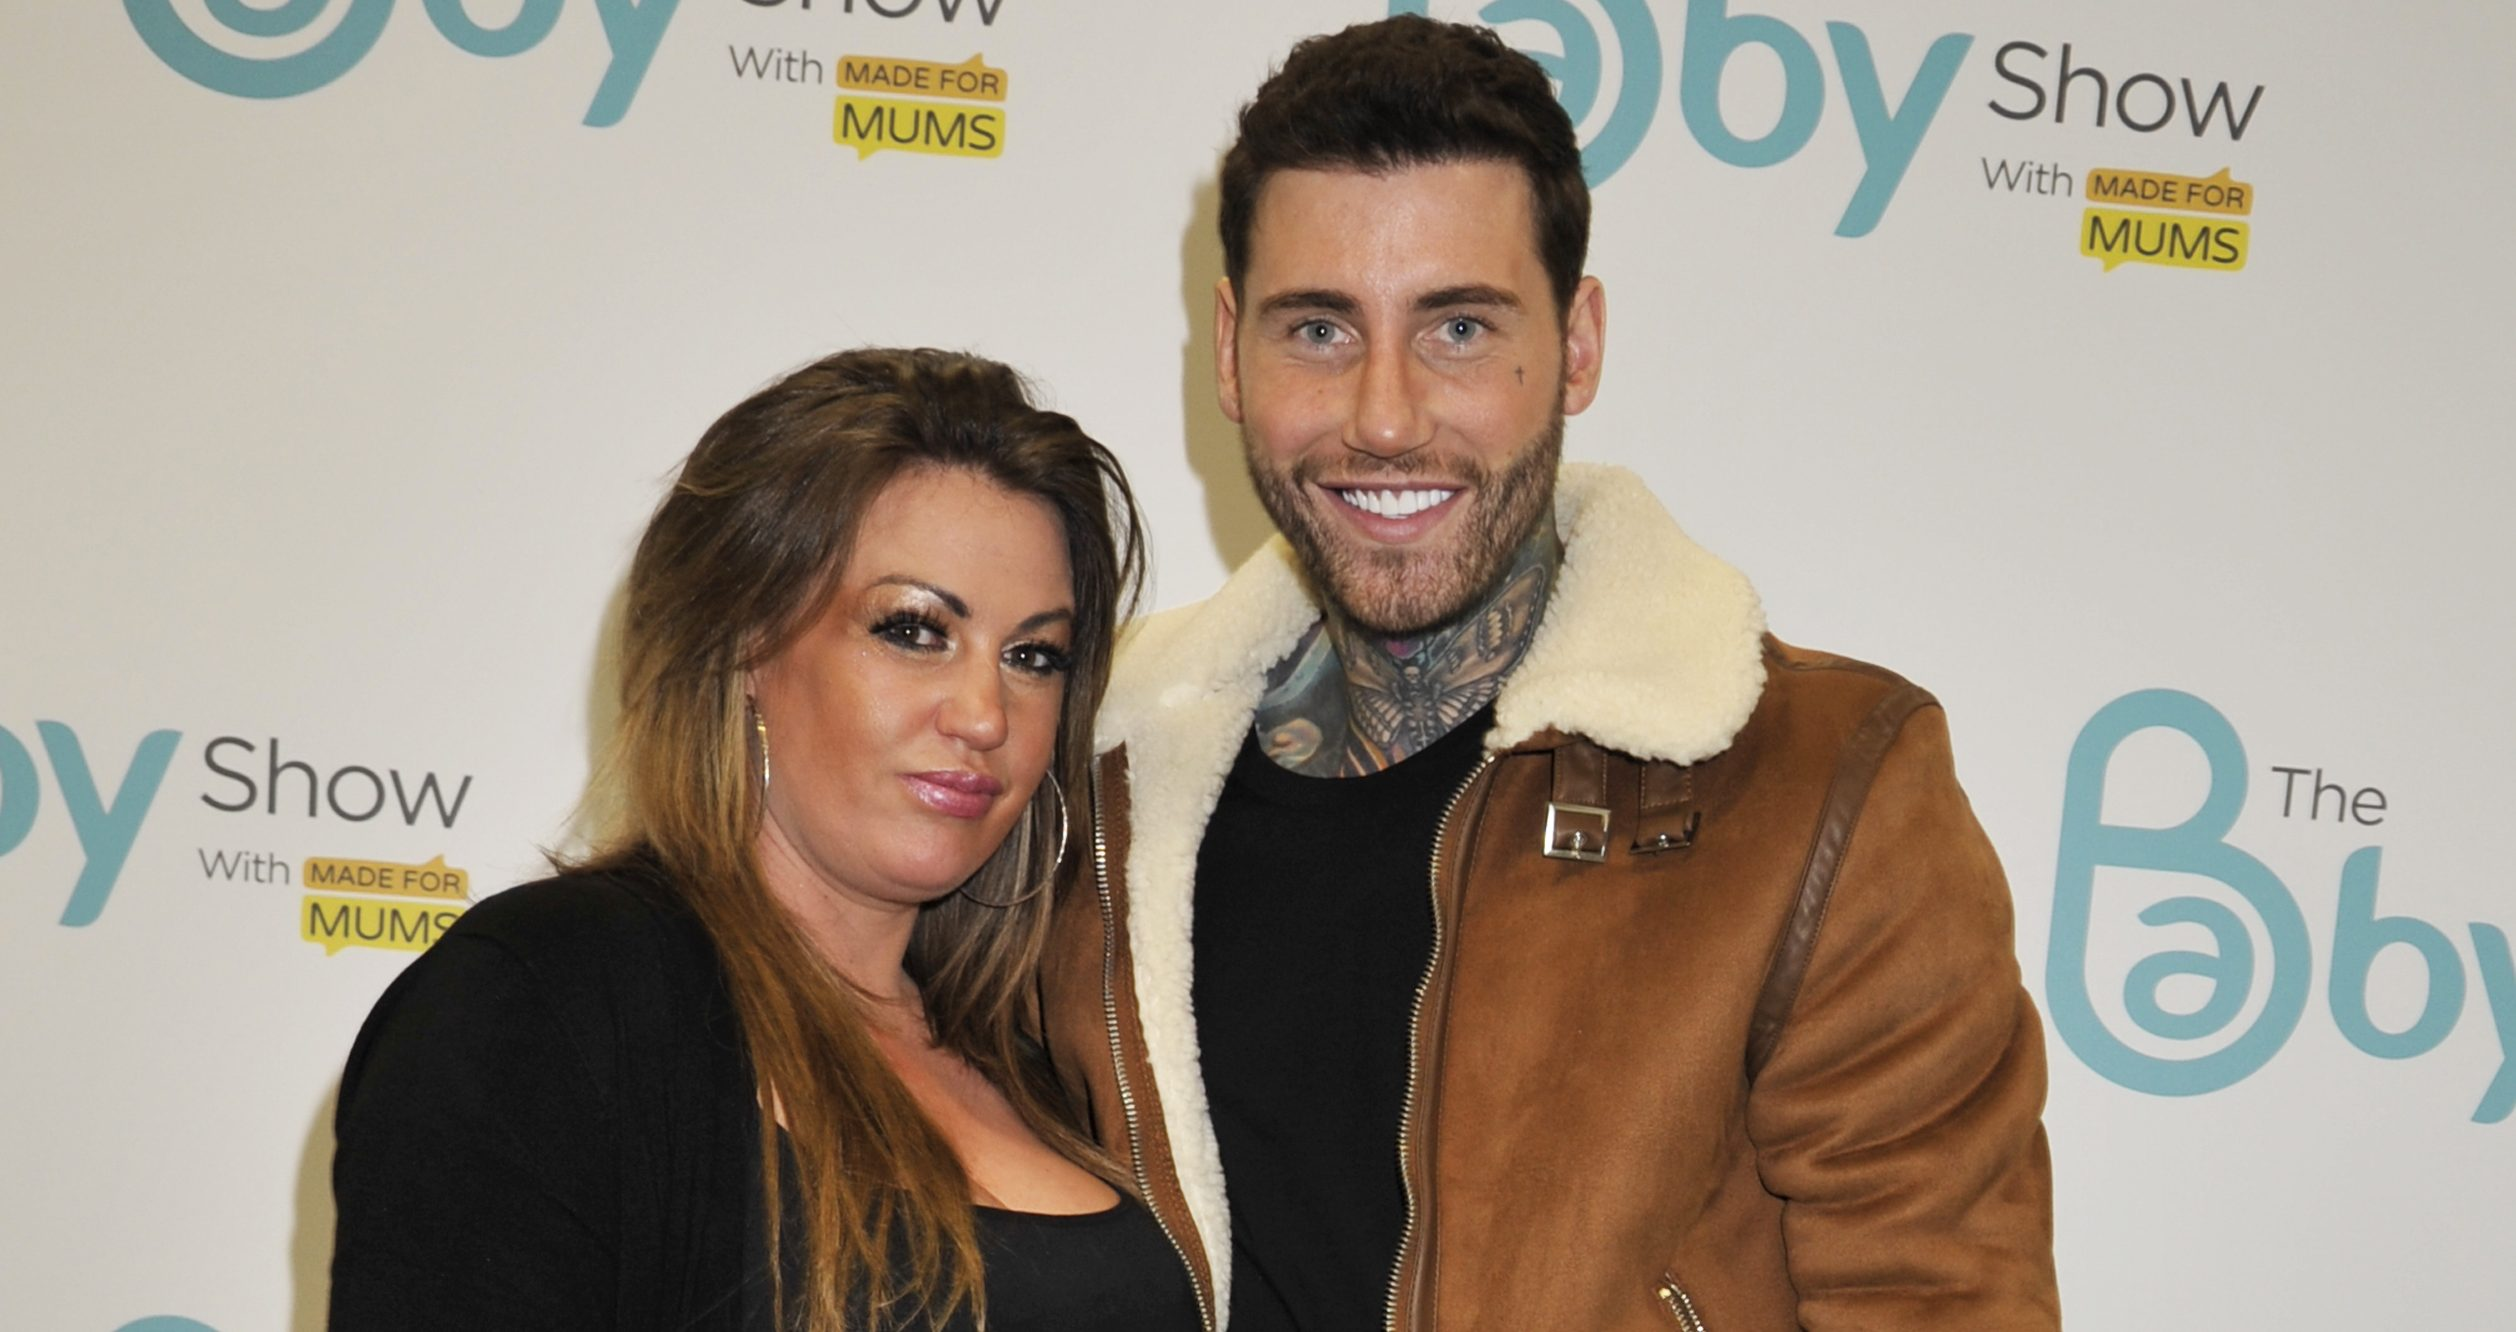 CBB star Jeremy McConnell 'becomes a dad again as girlfriend Katie gives birth'